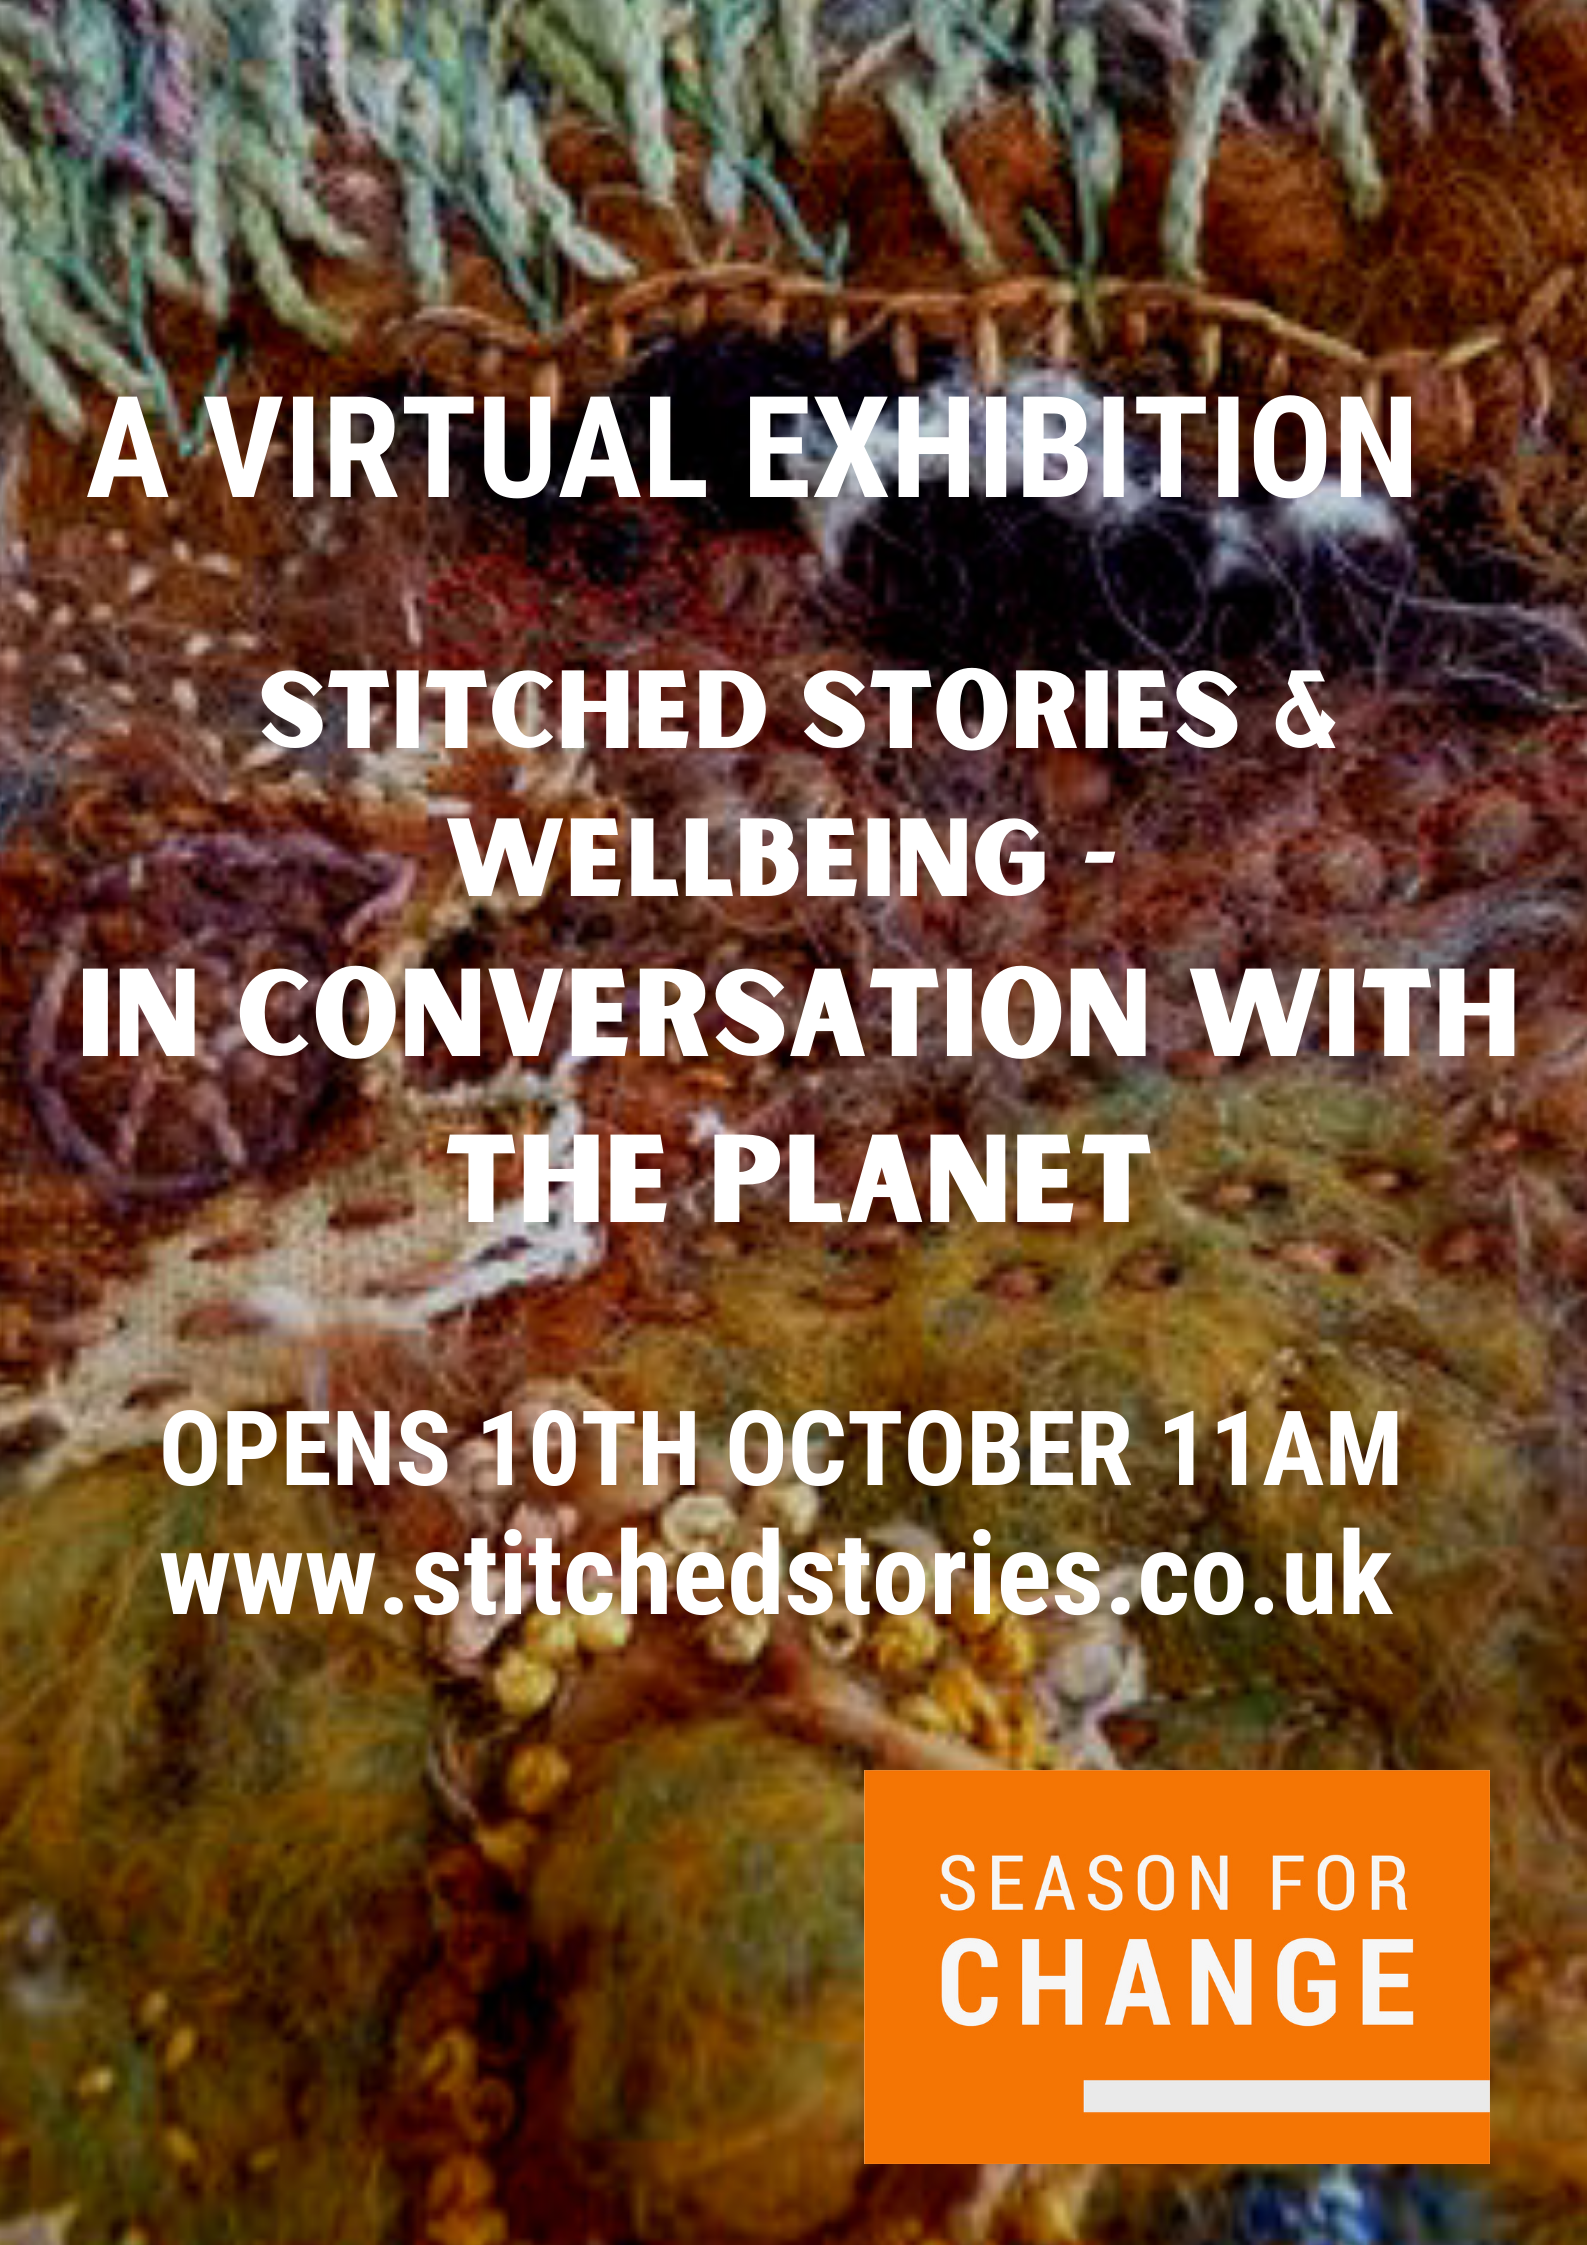 Stitched Stories & Wellbeing 'In Conversation with the Planet' #CraftWeekScotland